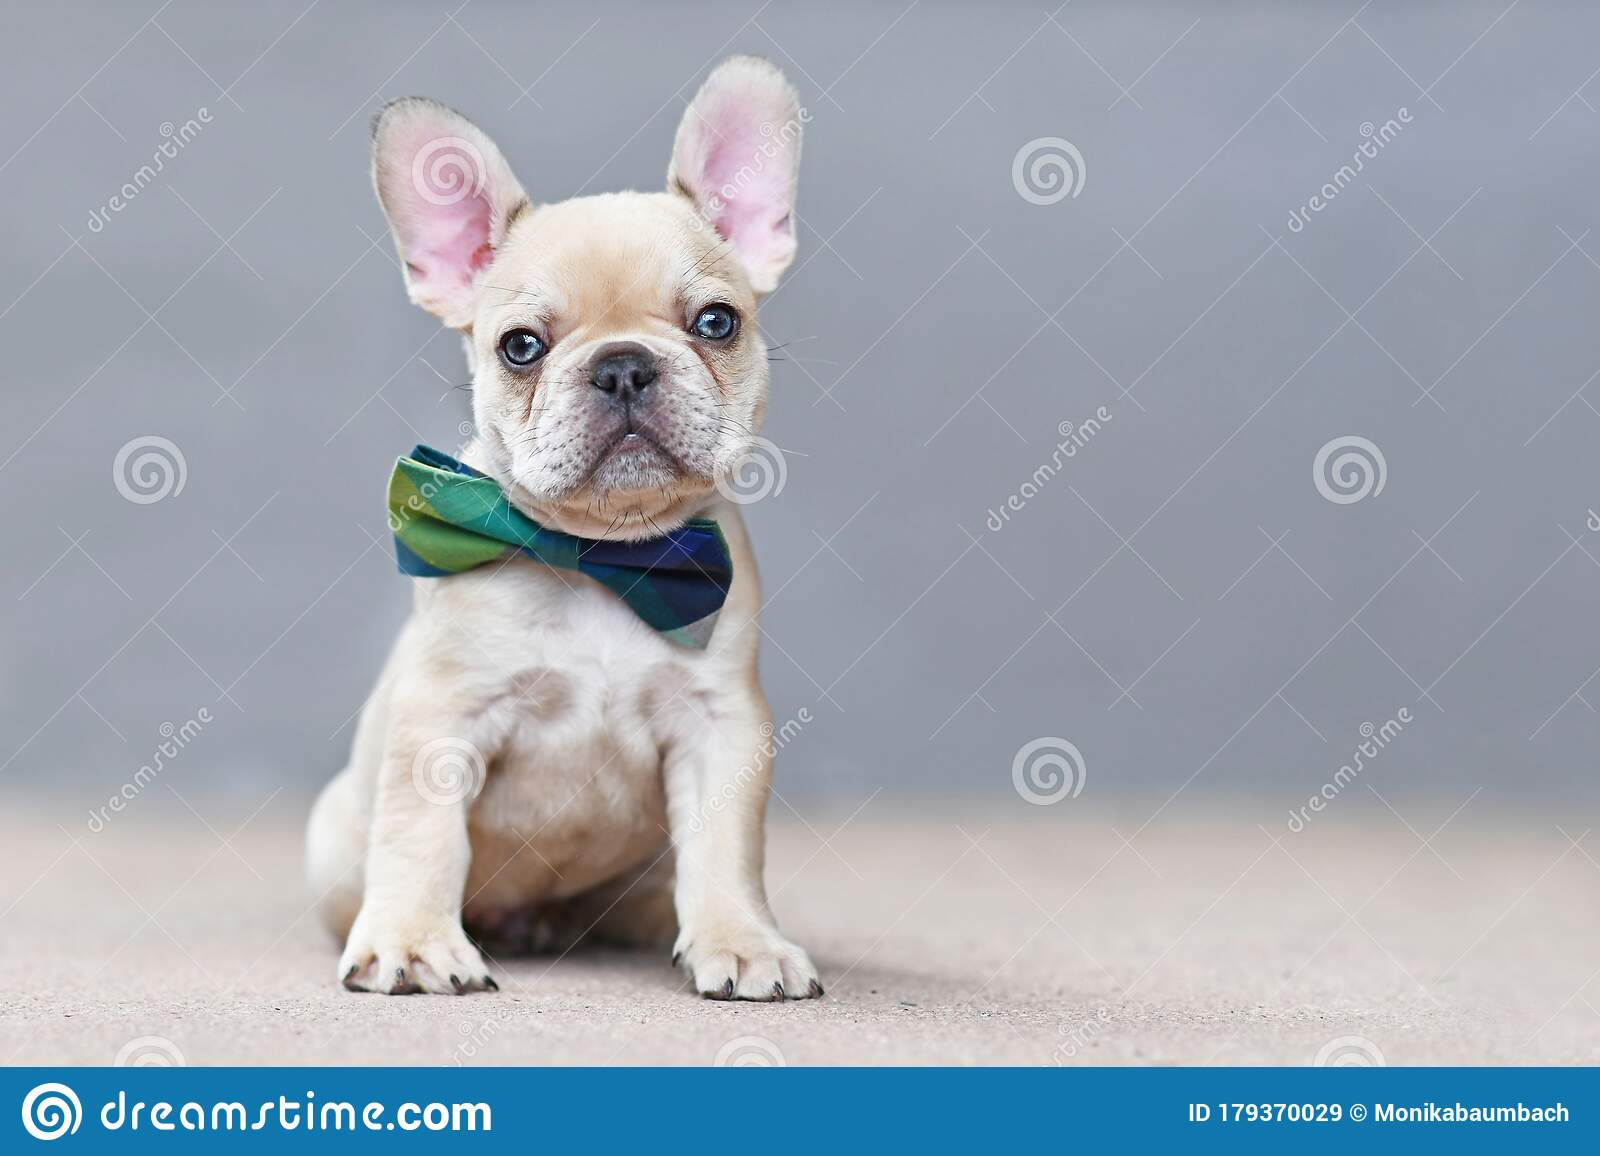 Cute 7 Weeks Old Lilac Fawn Colored French Bulldog Dog Puppy Wearing A Bow Tie Sitting In Front Of Gray Wall Stock Image Image Of Little Bowtie 179370029